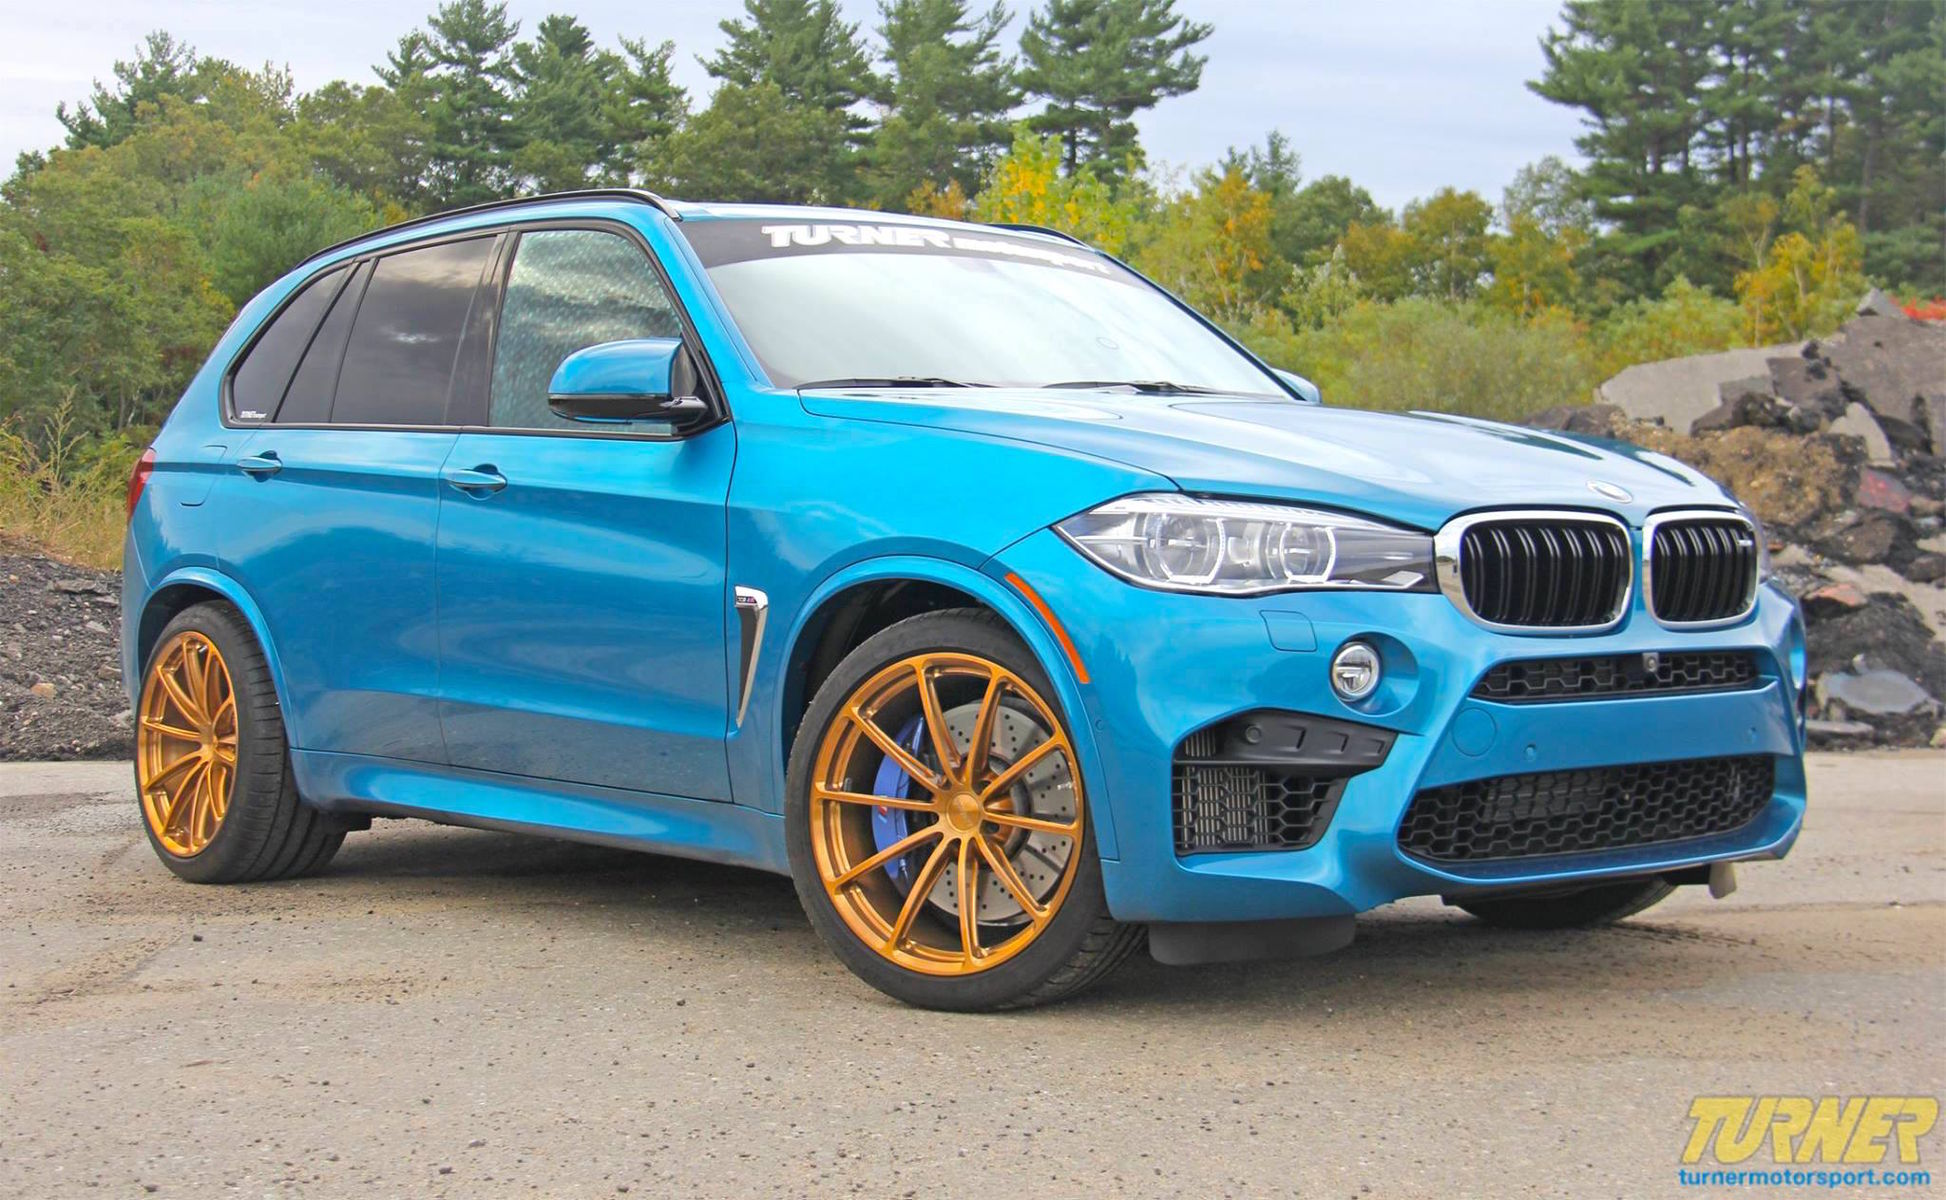 2015 BMW X5 M | Turner Motorsport BMW X5 M on Forgeline GT1 5-Lug Wheels